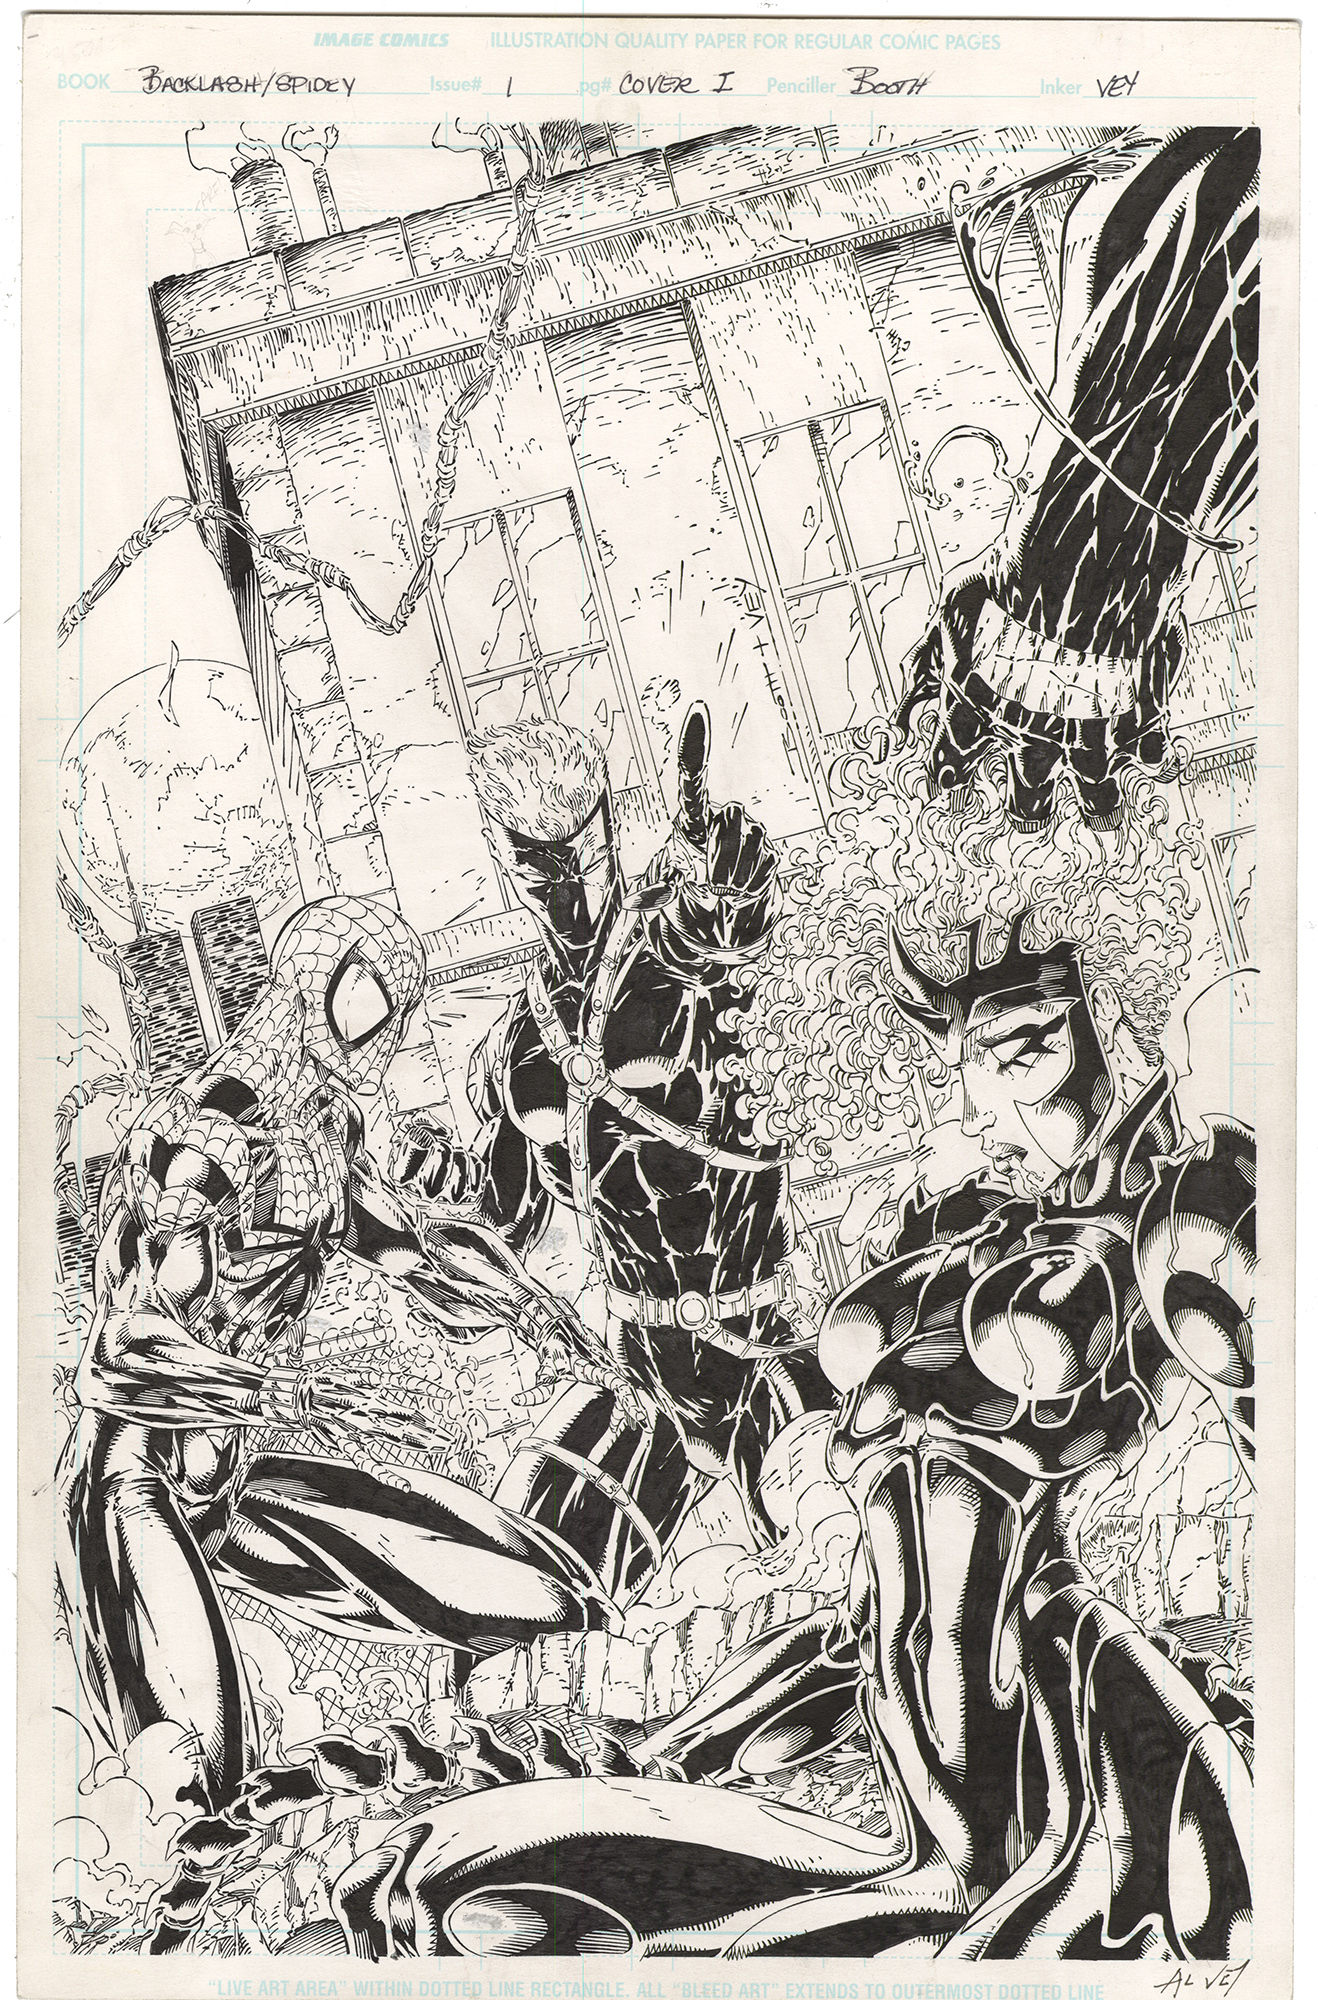 Backlash/Spidey #1 Variant Cover